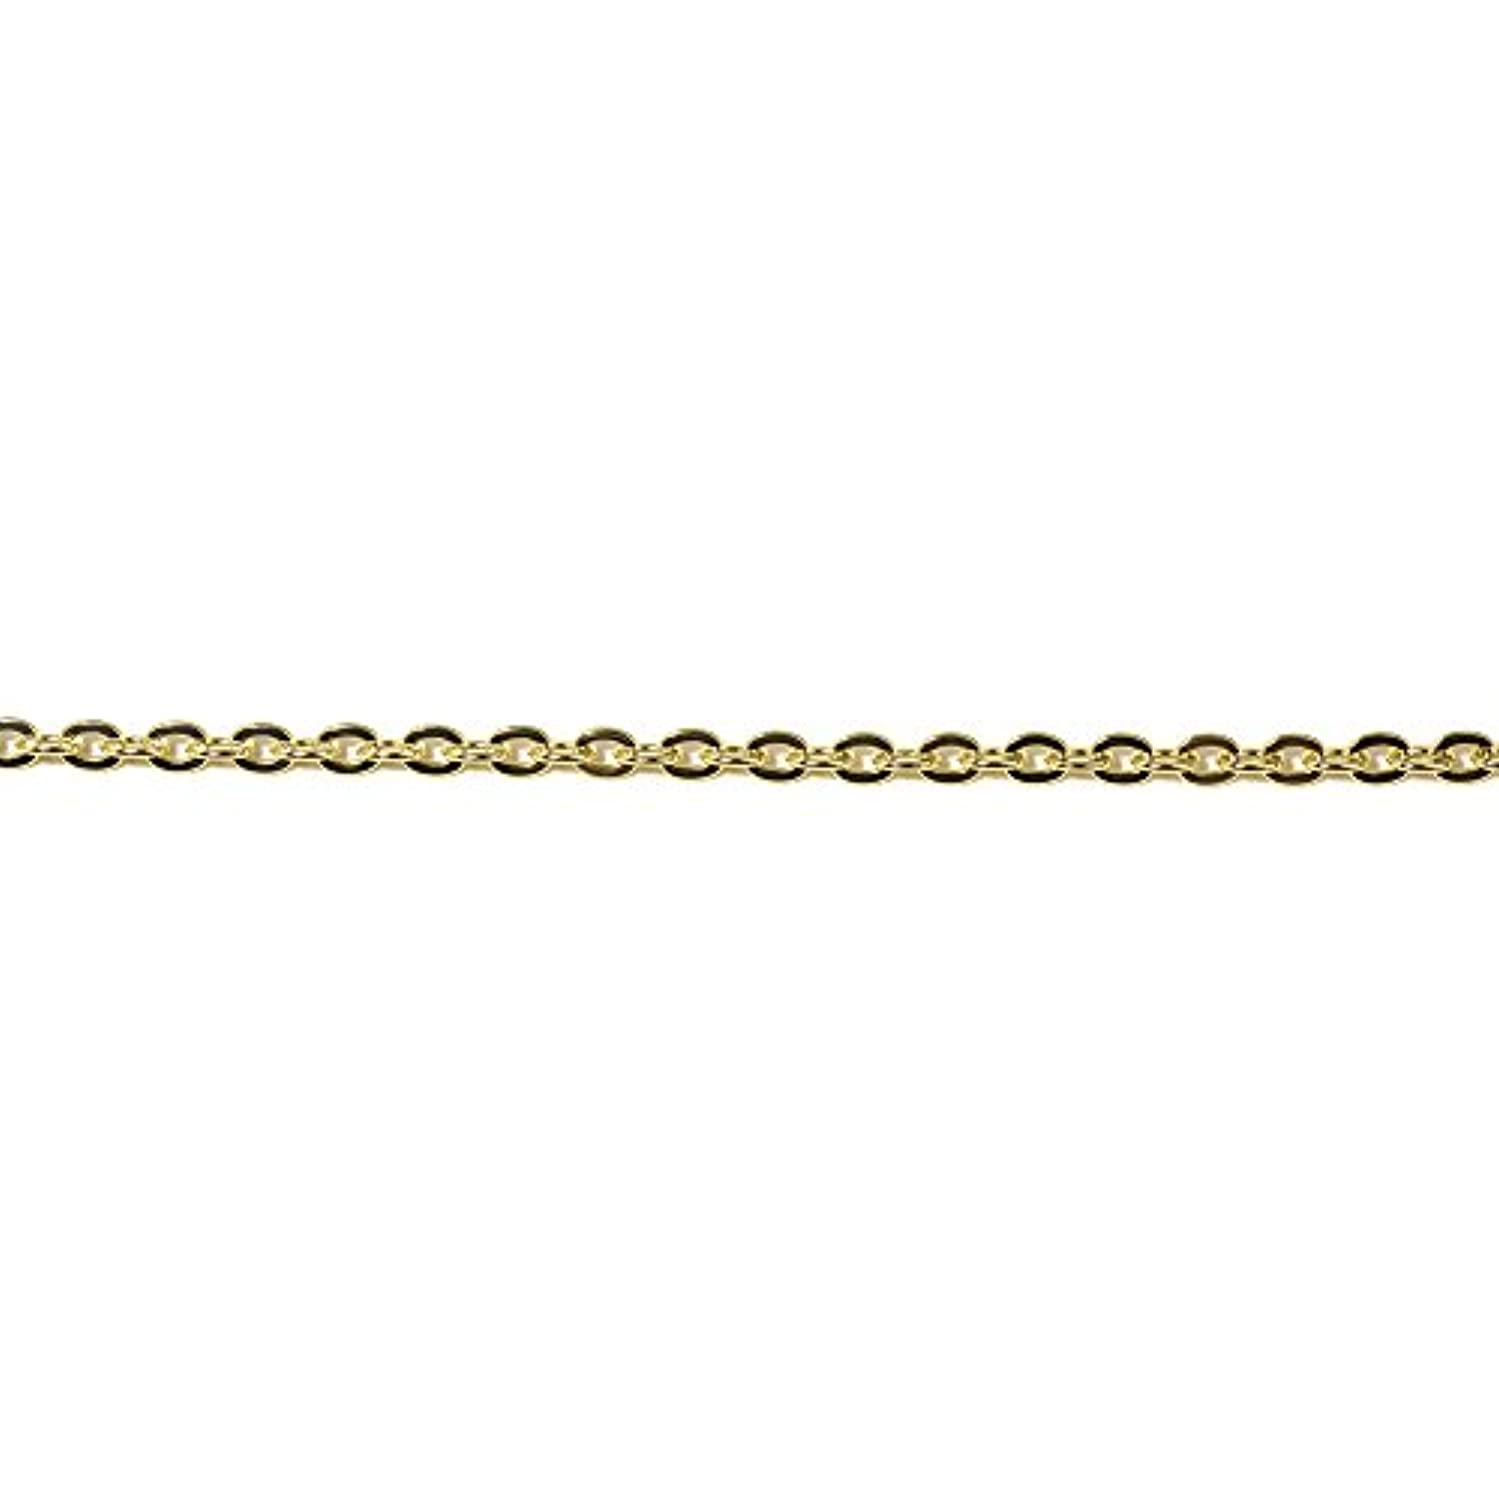 Rayher 4.8 mm Diameter Anchor Chain, Metal, Gold-Plated, 16.1 x 7.1 x 1.7 cm